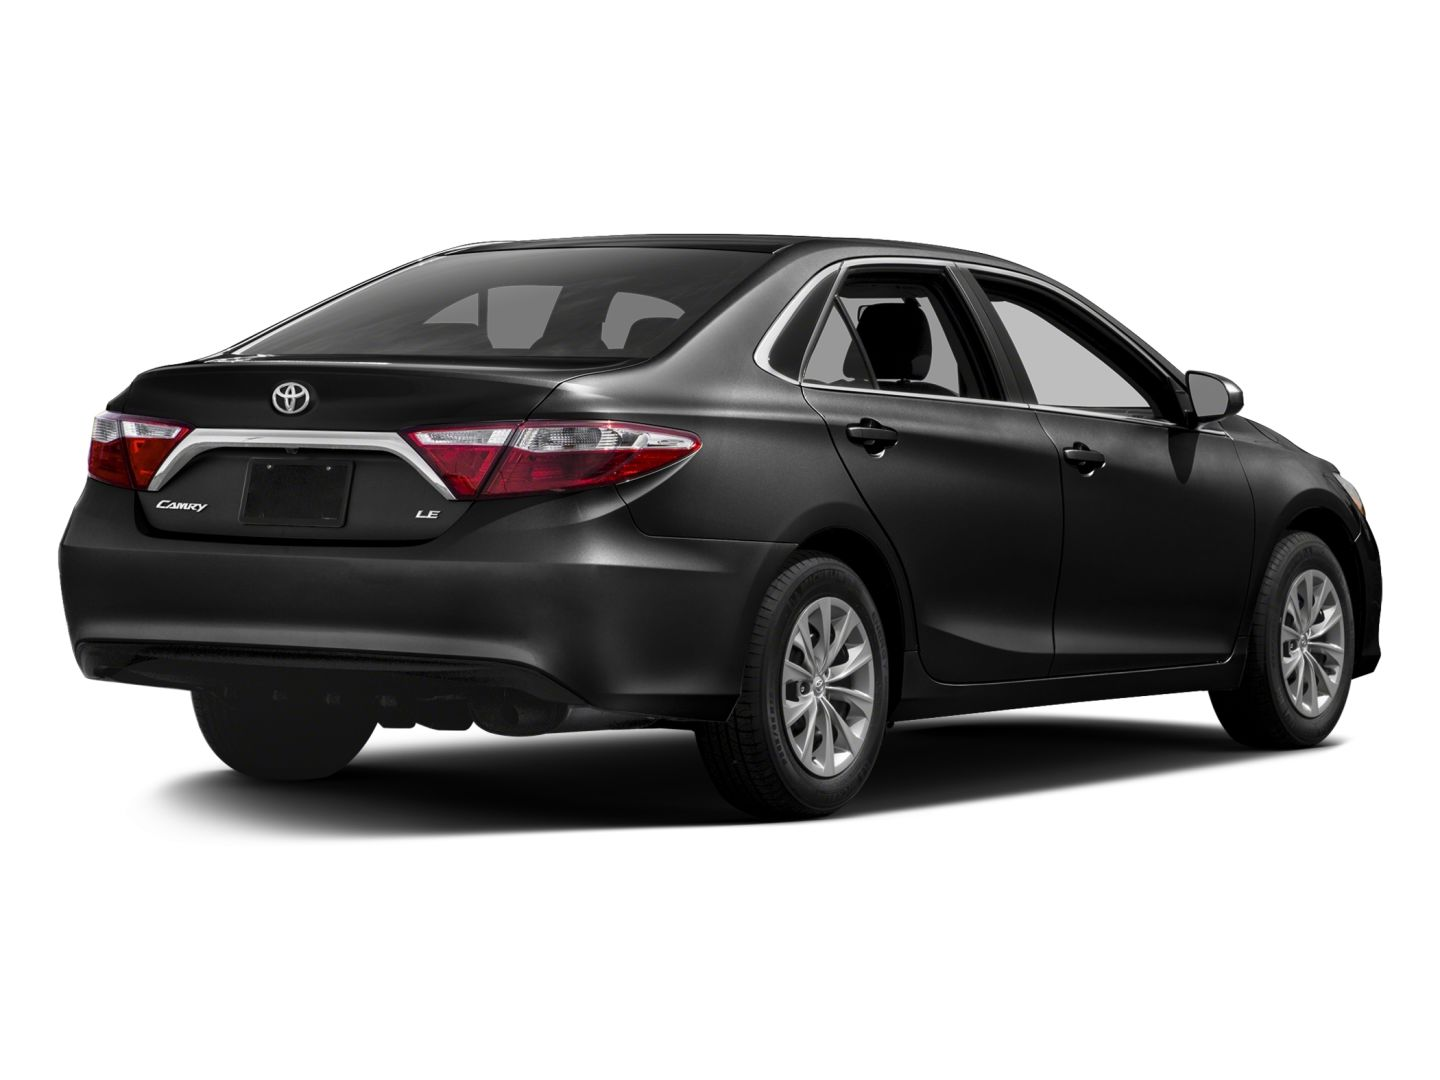 2017 Toyota Camry LE for sale in Spruce Grove, Alberta